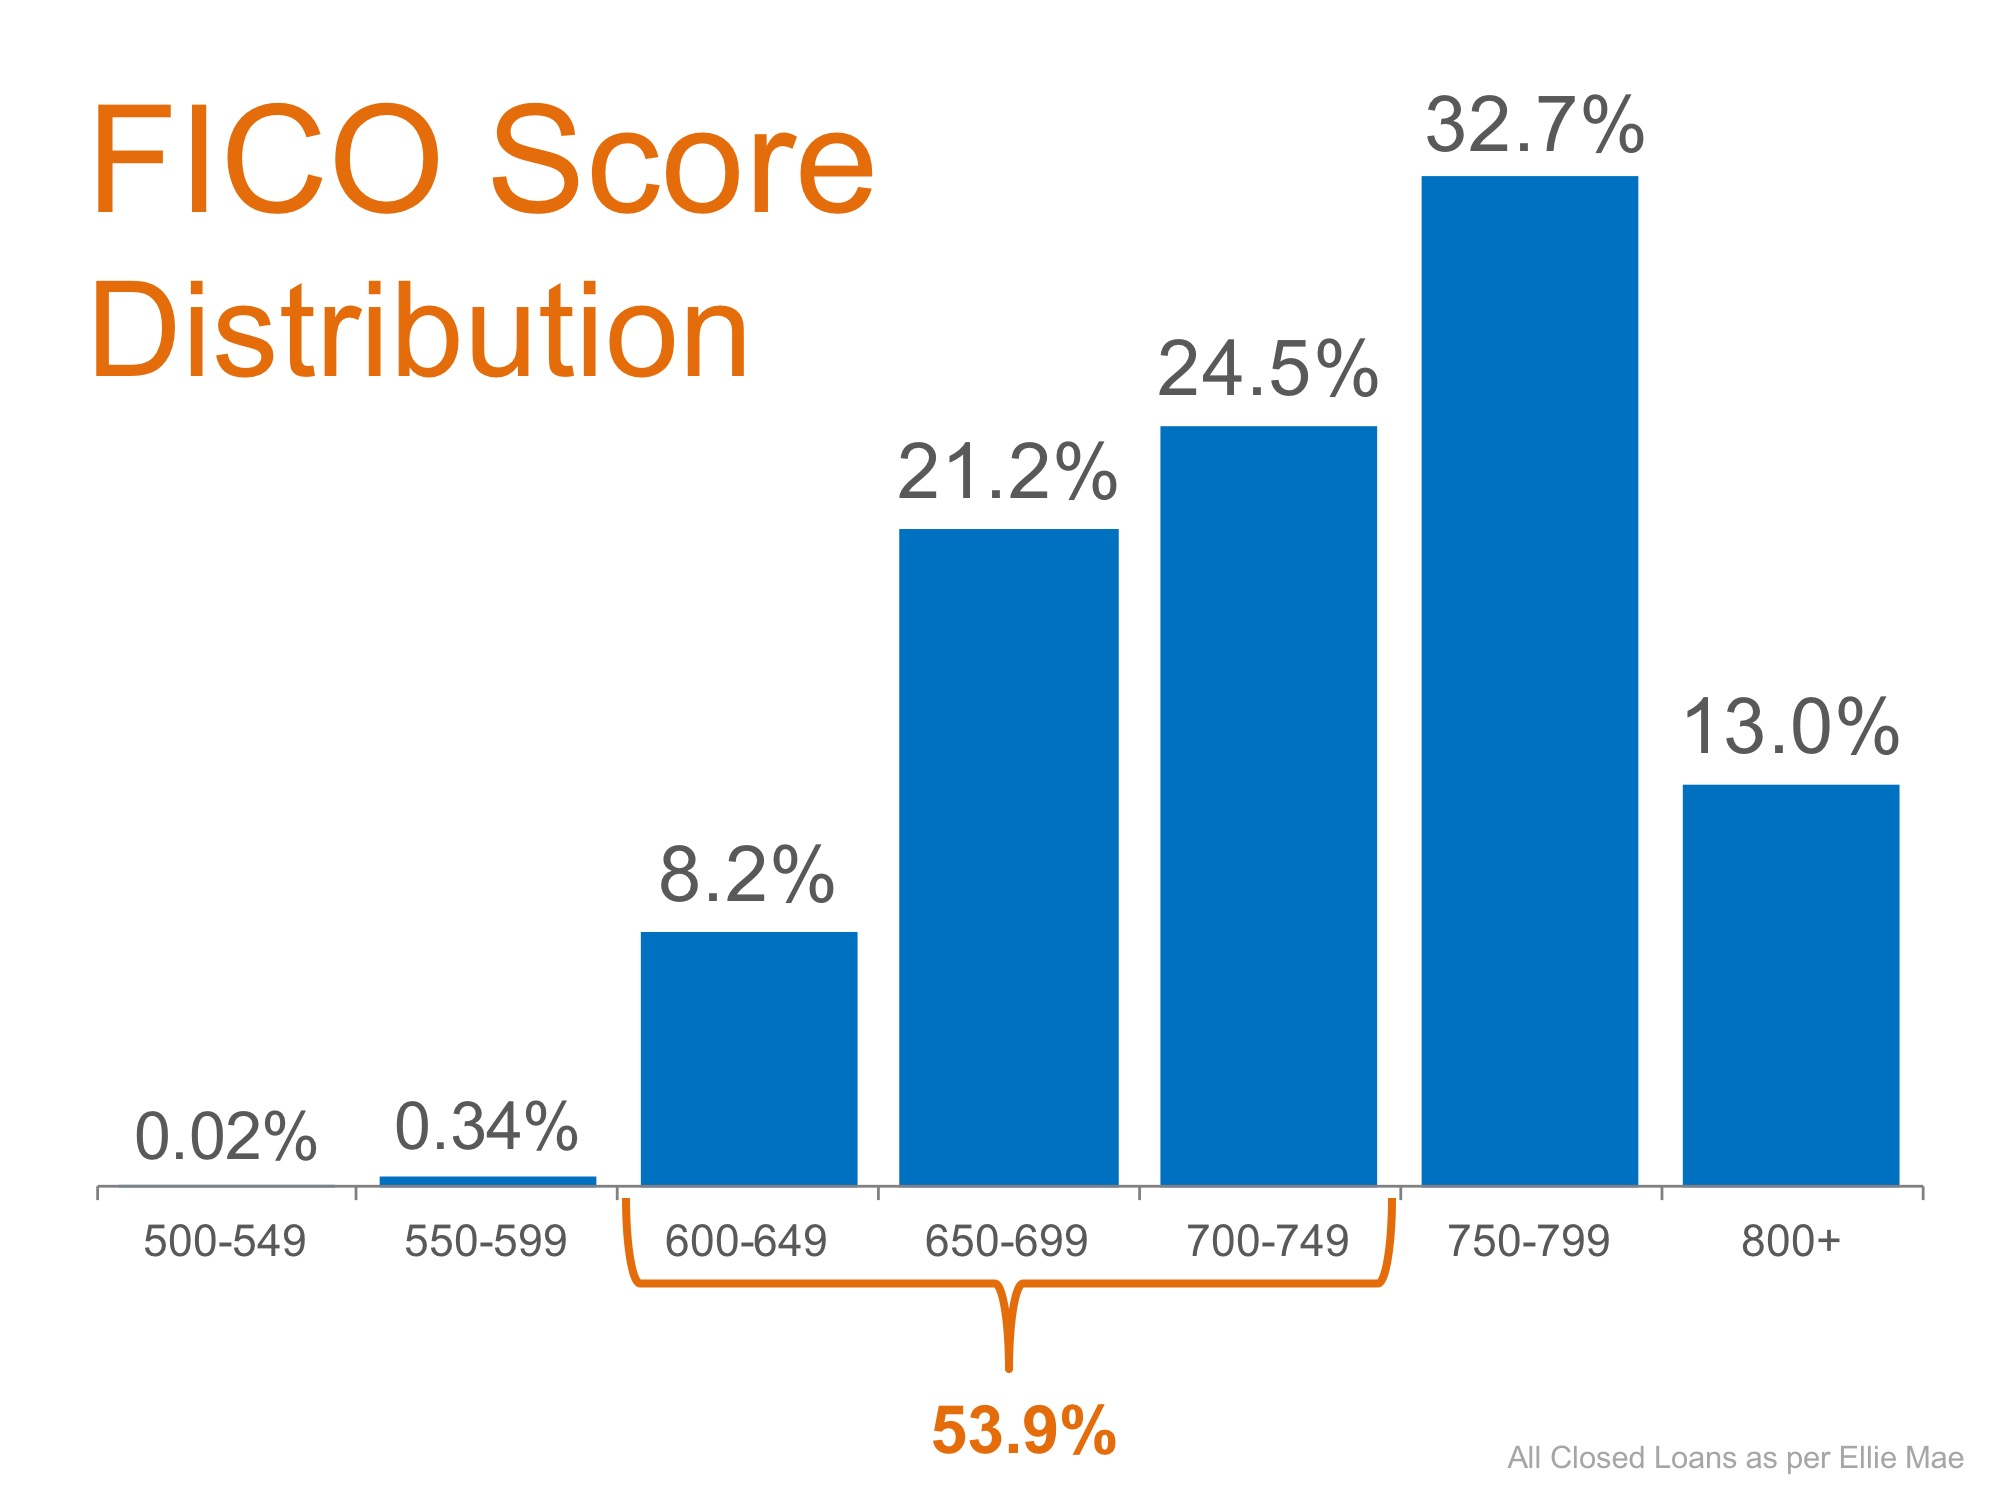 Don't Disqualify Yourself… Over Half of All Loans Approved Have a FICO Score Under 750 | MyKCM